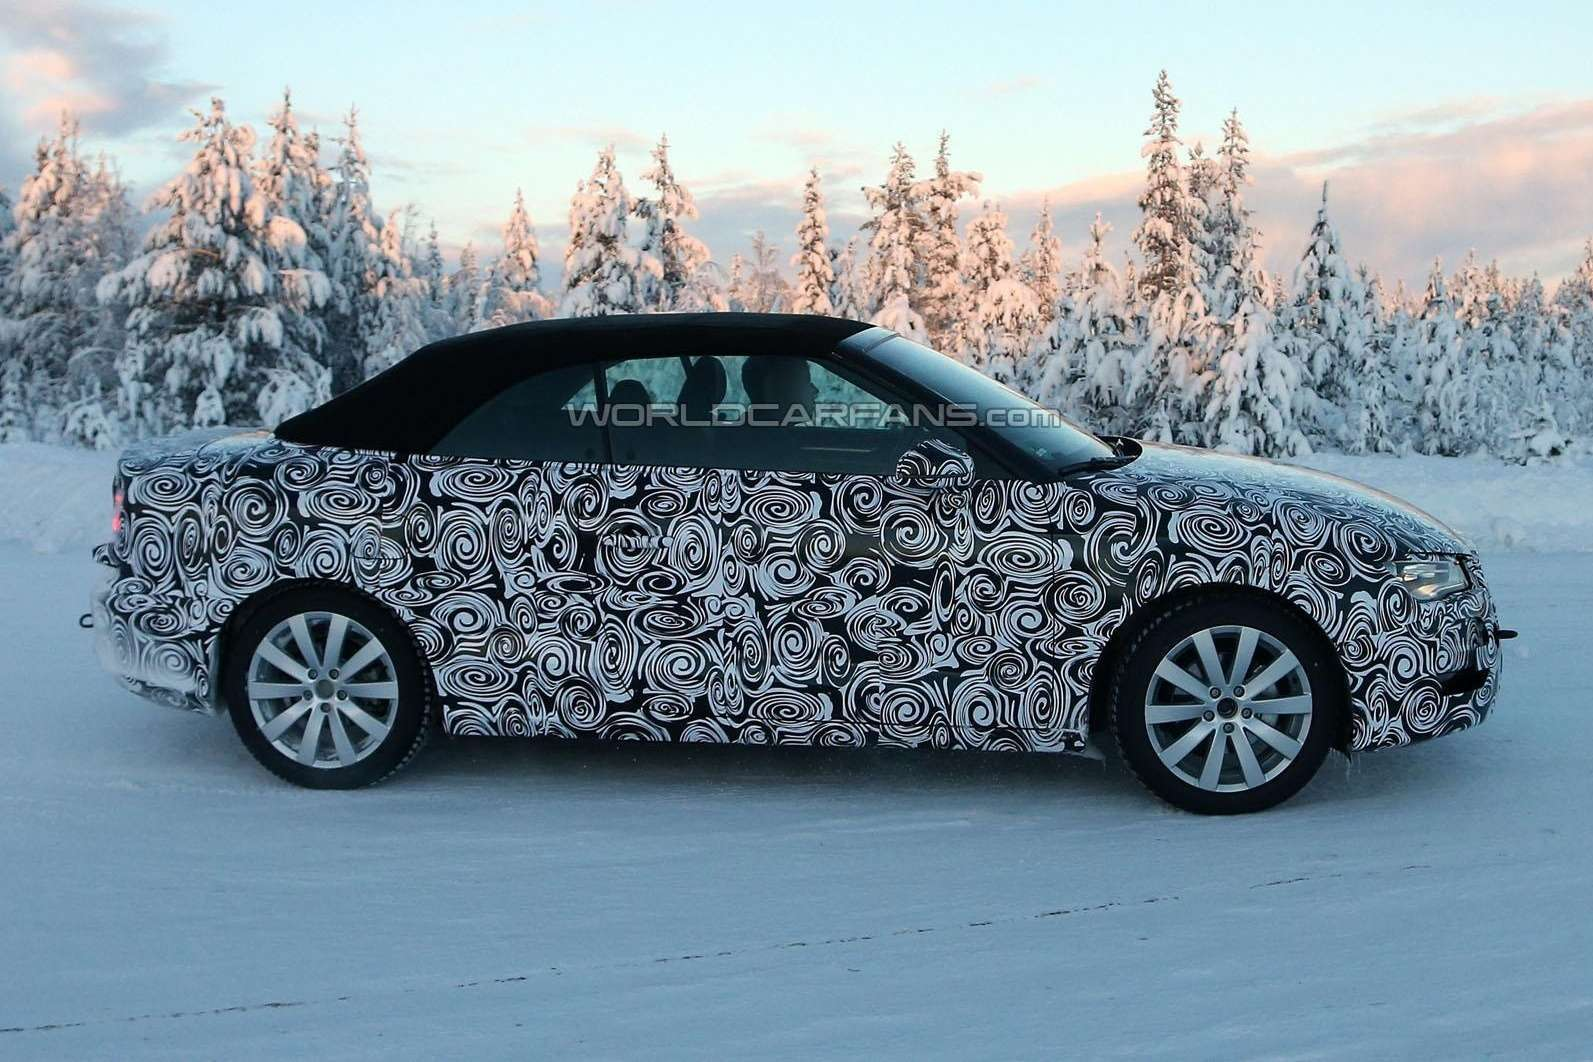 Audi A3 Cabriolet test prototype side view_no_copyright